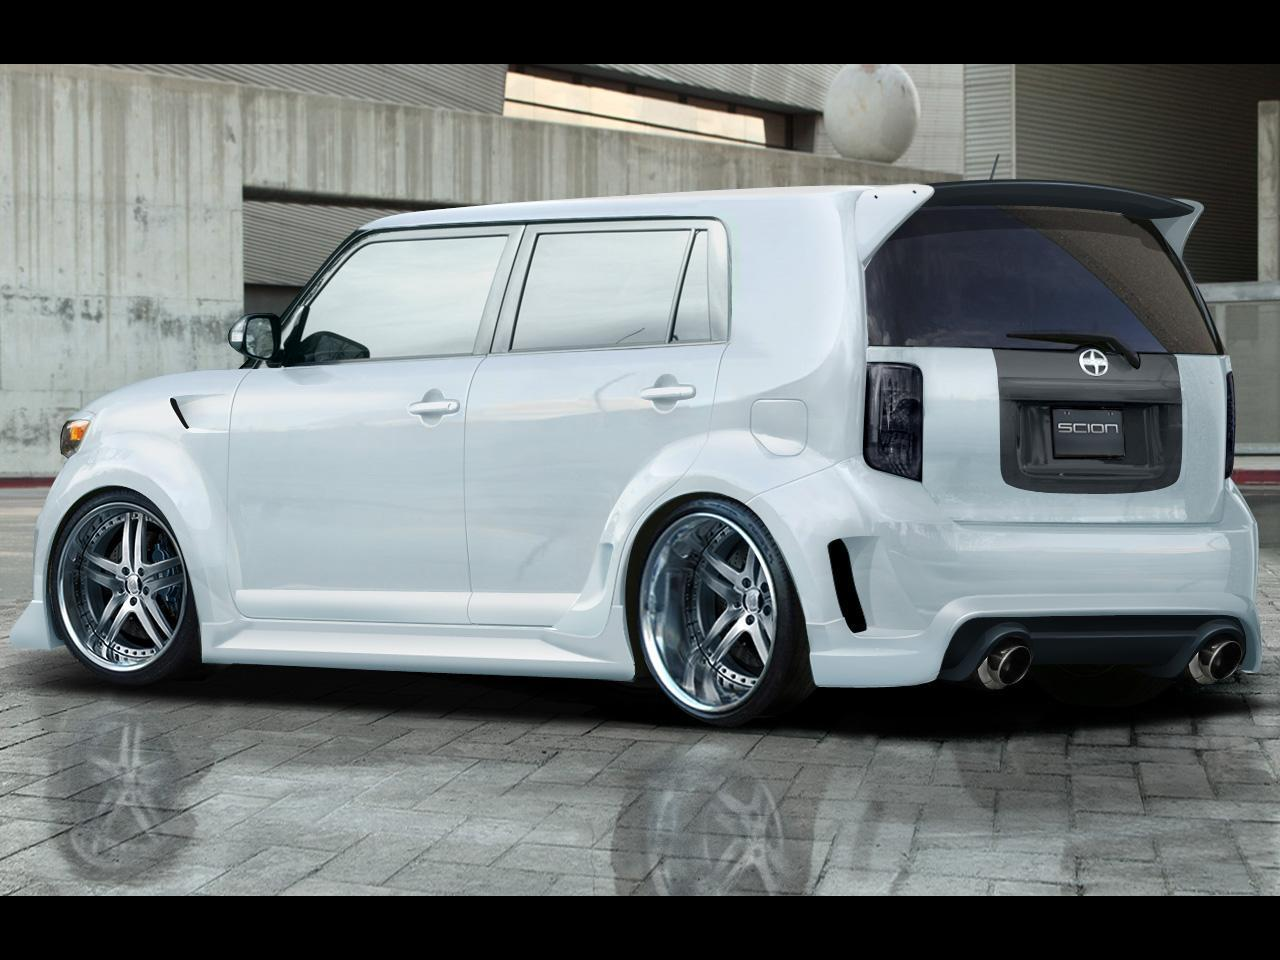 scion-xb-wallpaper-wallpaper-7